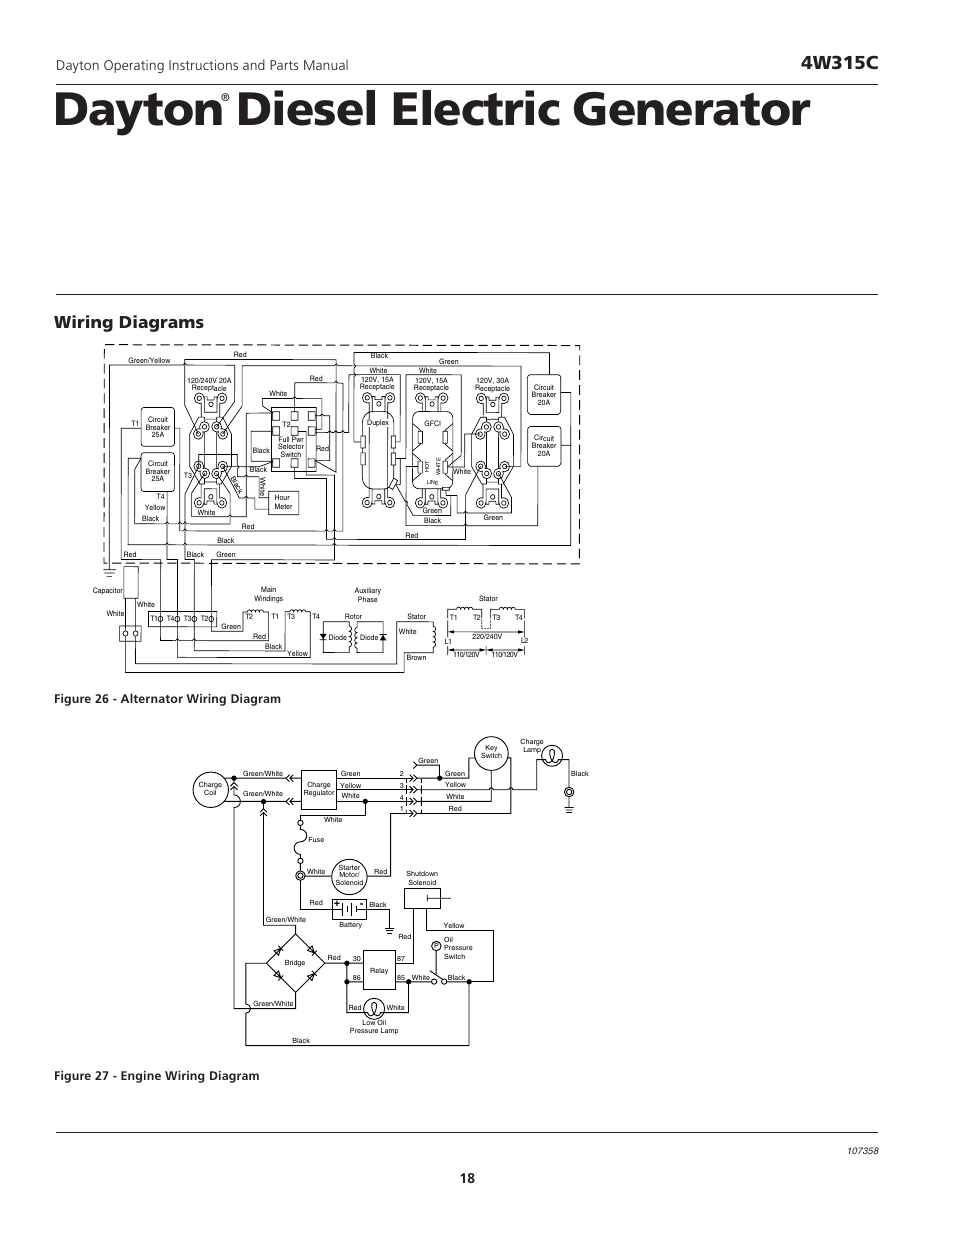 hight resolution of dayton diesel electric generator 4w315c wiring diagrams dayton operating instructions and parts manual